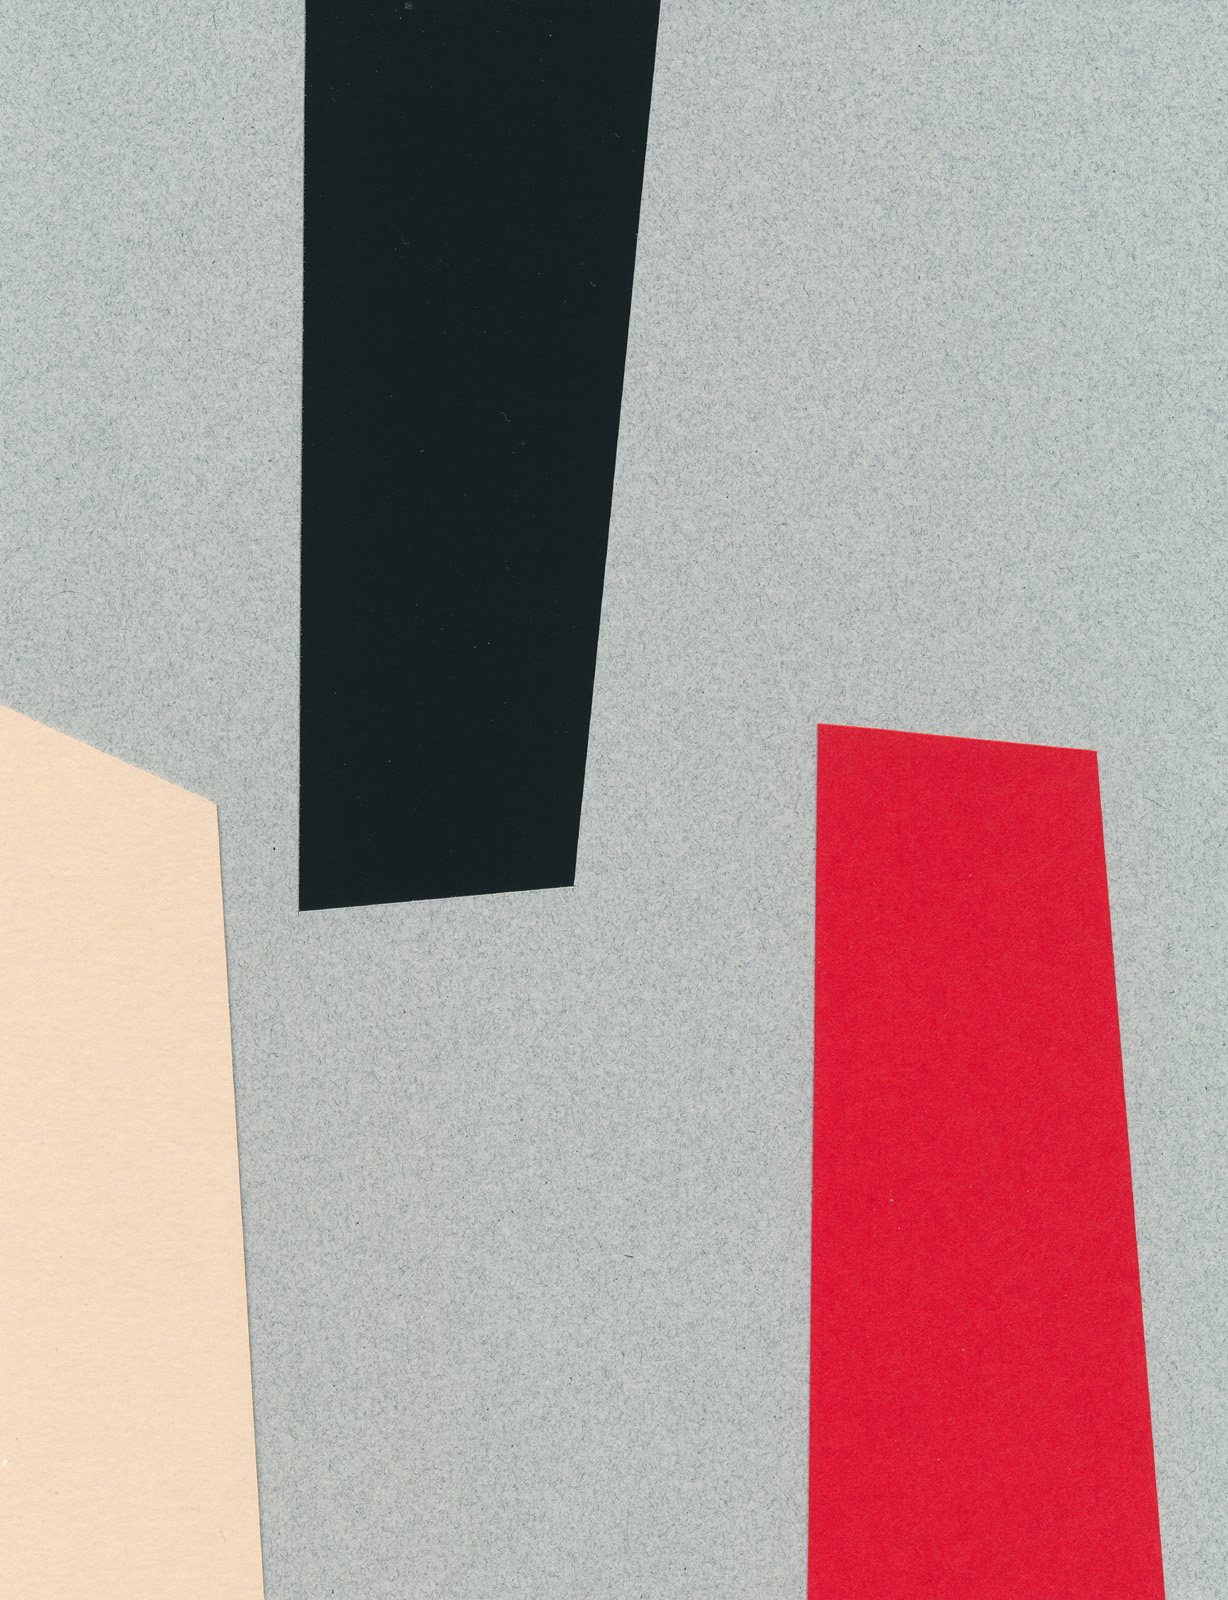 Interplay, paper-cut collage